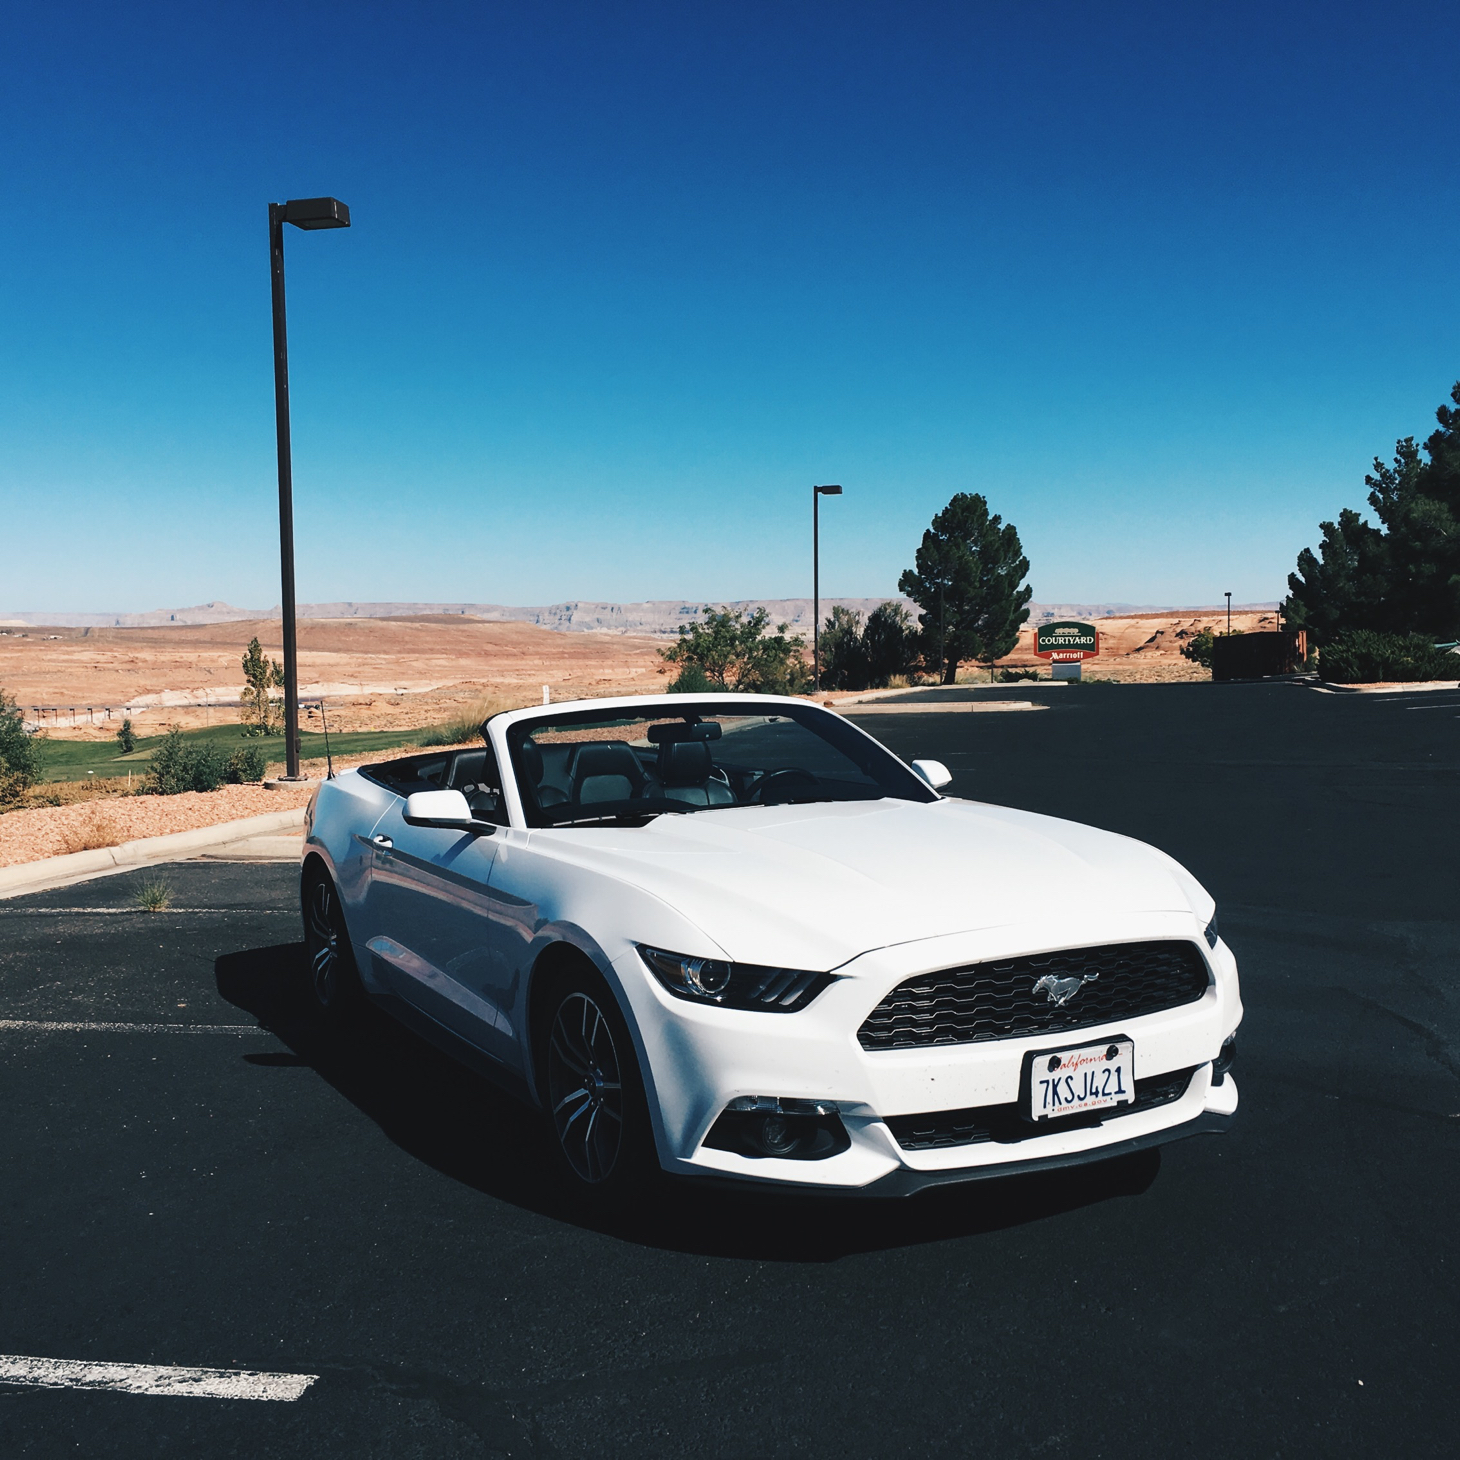 Tips for a road trip in the US